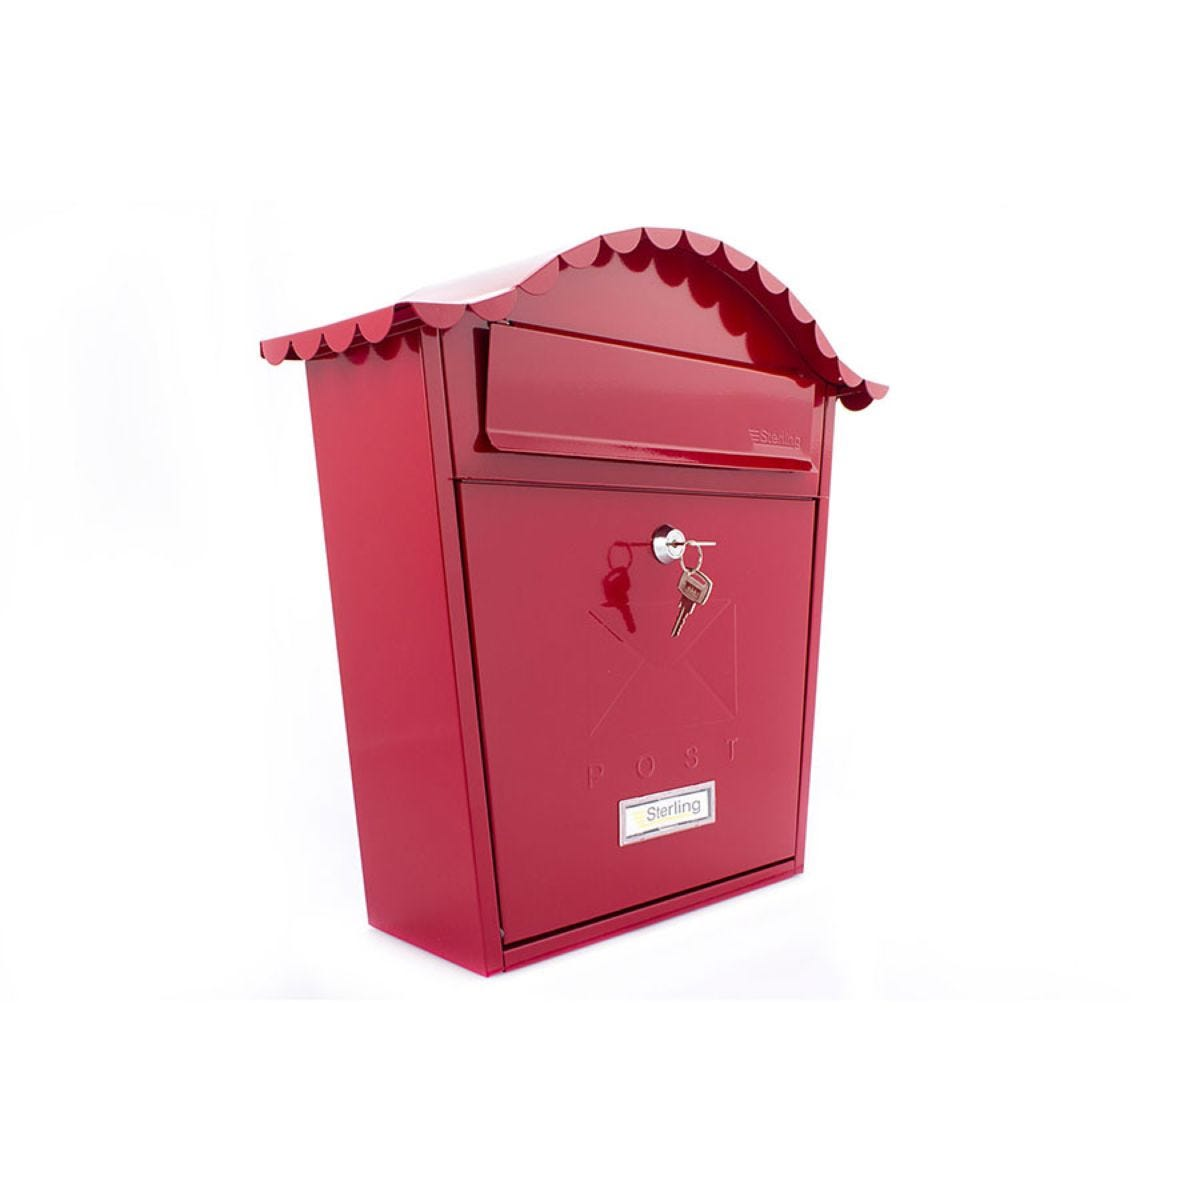 Sterling Classic Post Box - Red